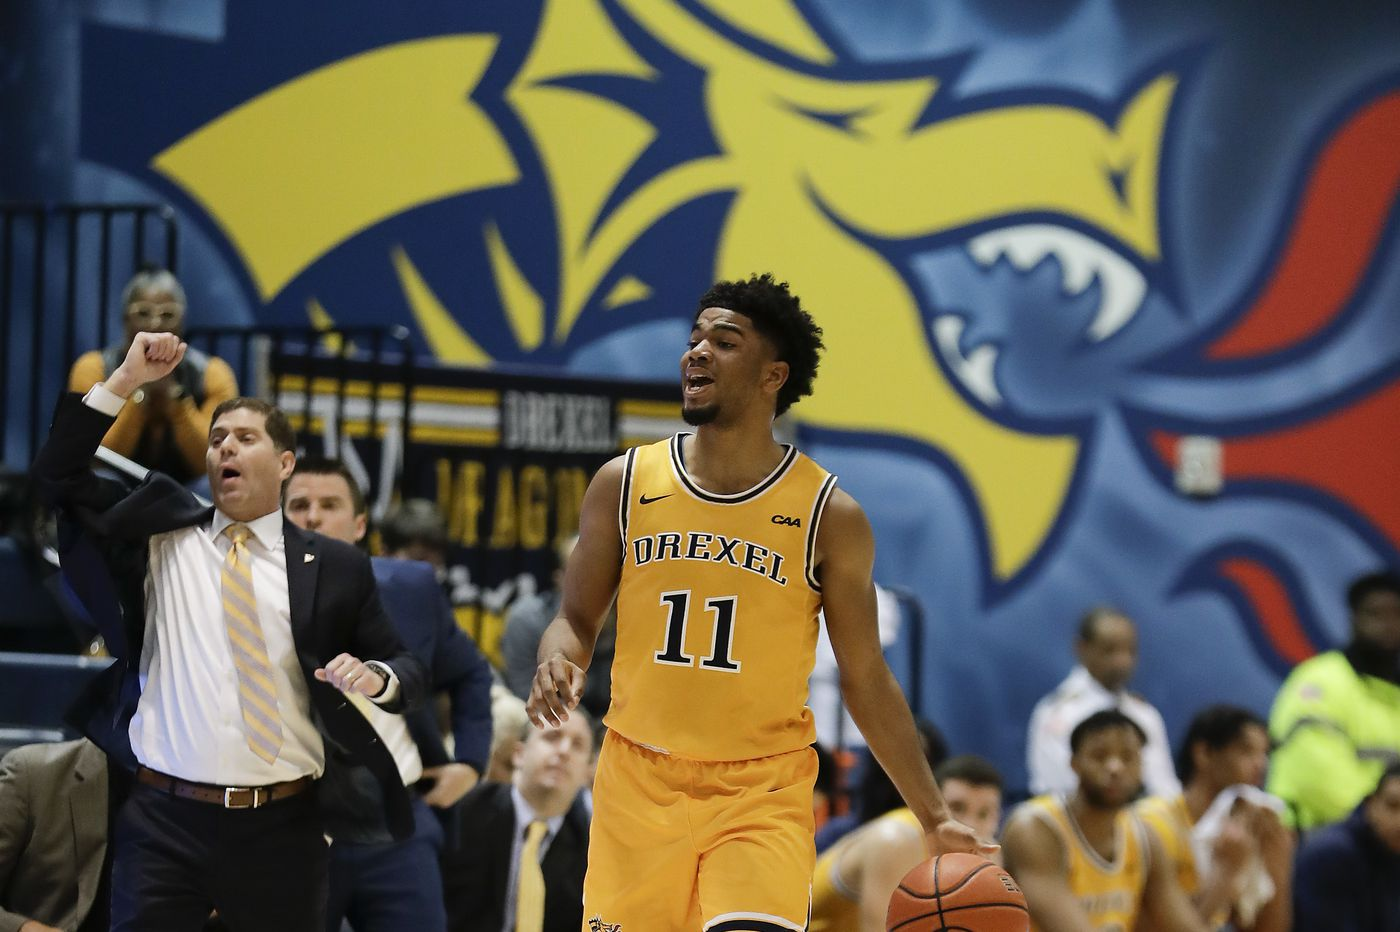 Drexel starts slow in loss to Pittsburgh; St. Joe's game vs. Seton Hall on Monday is canceled